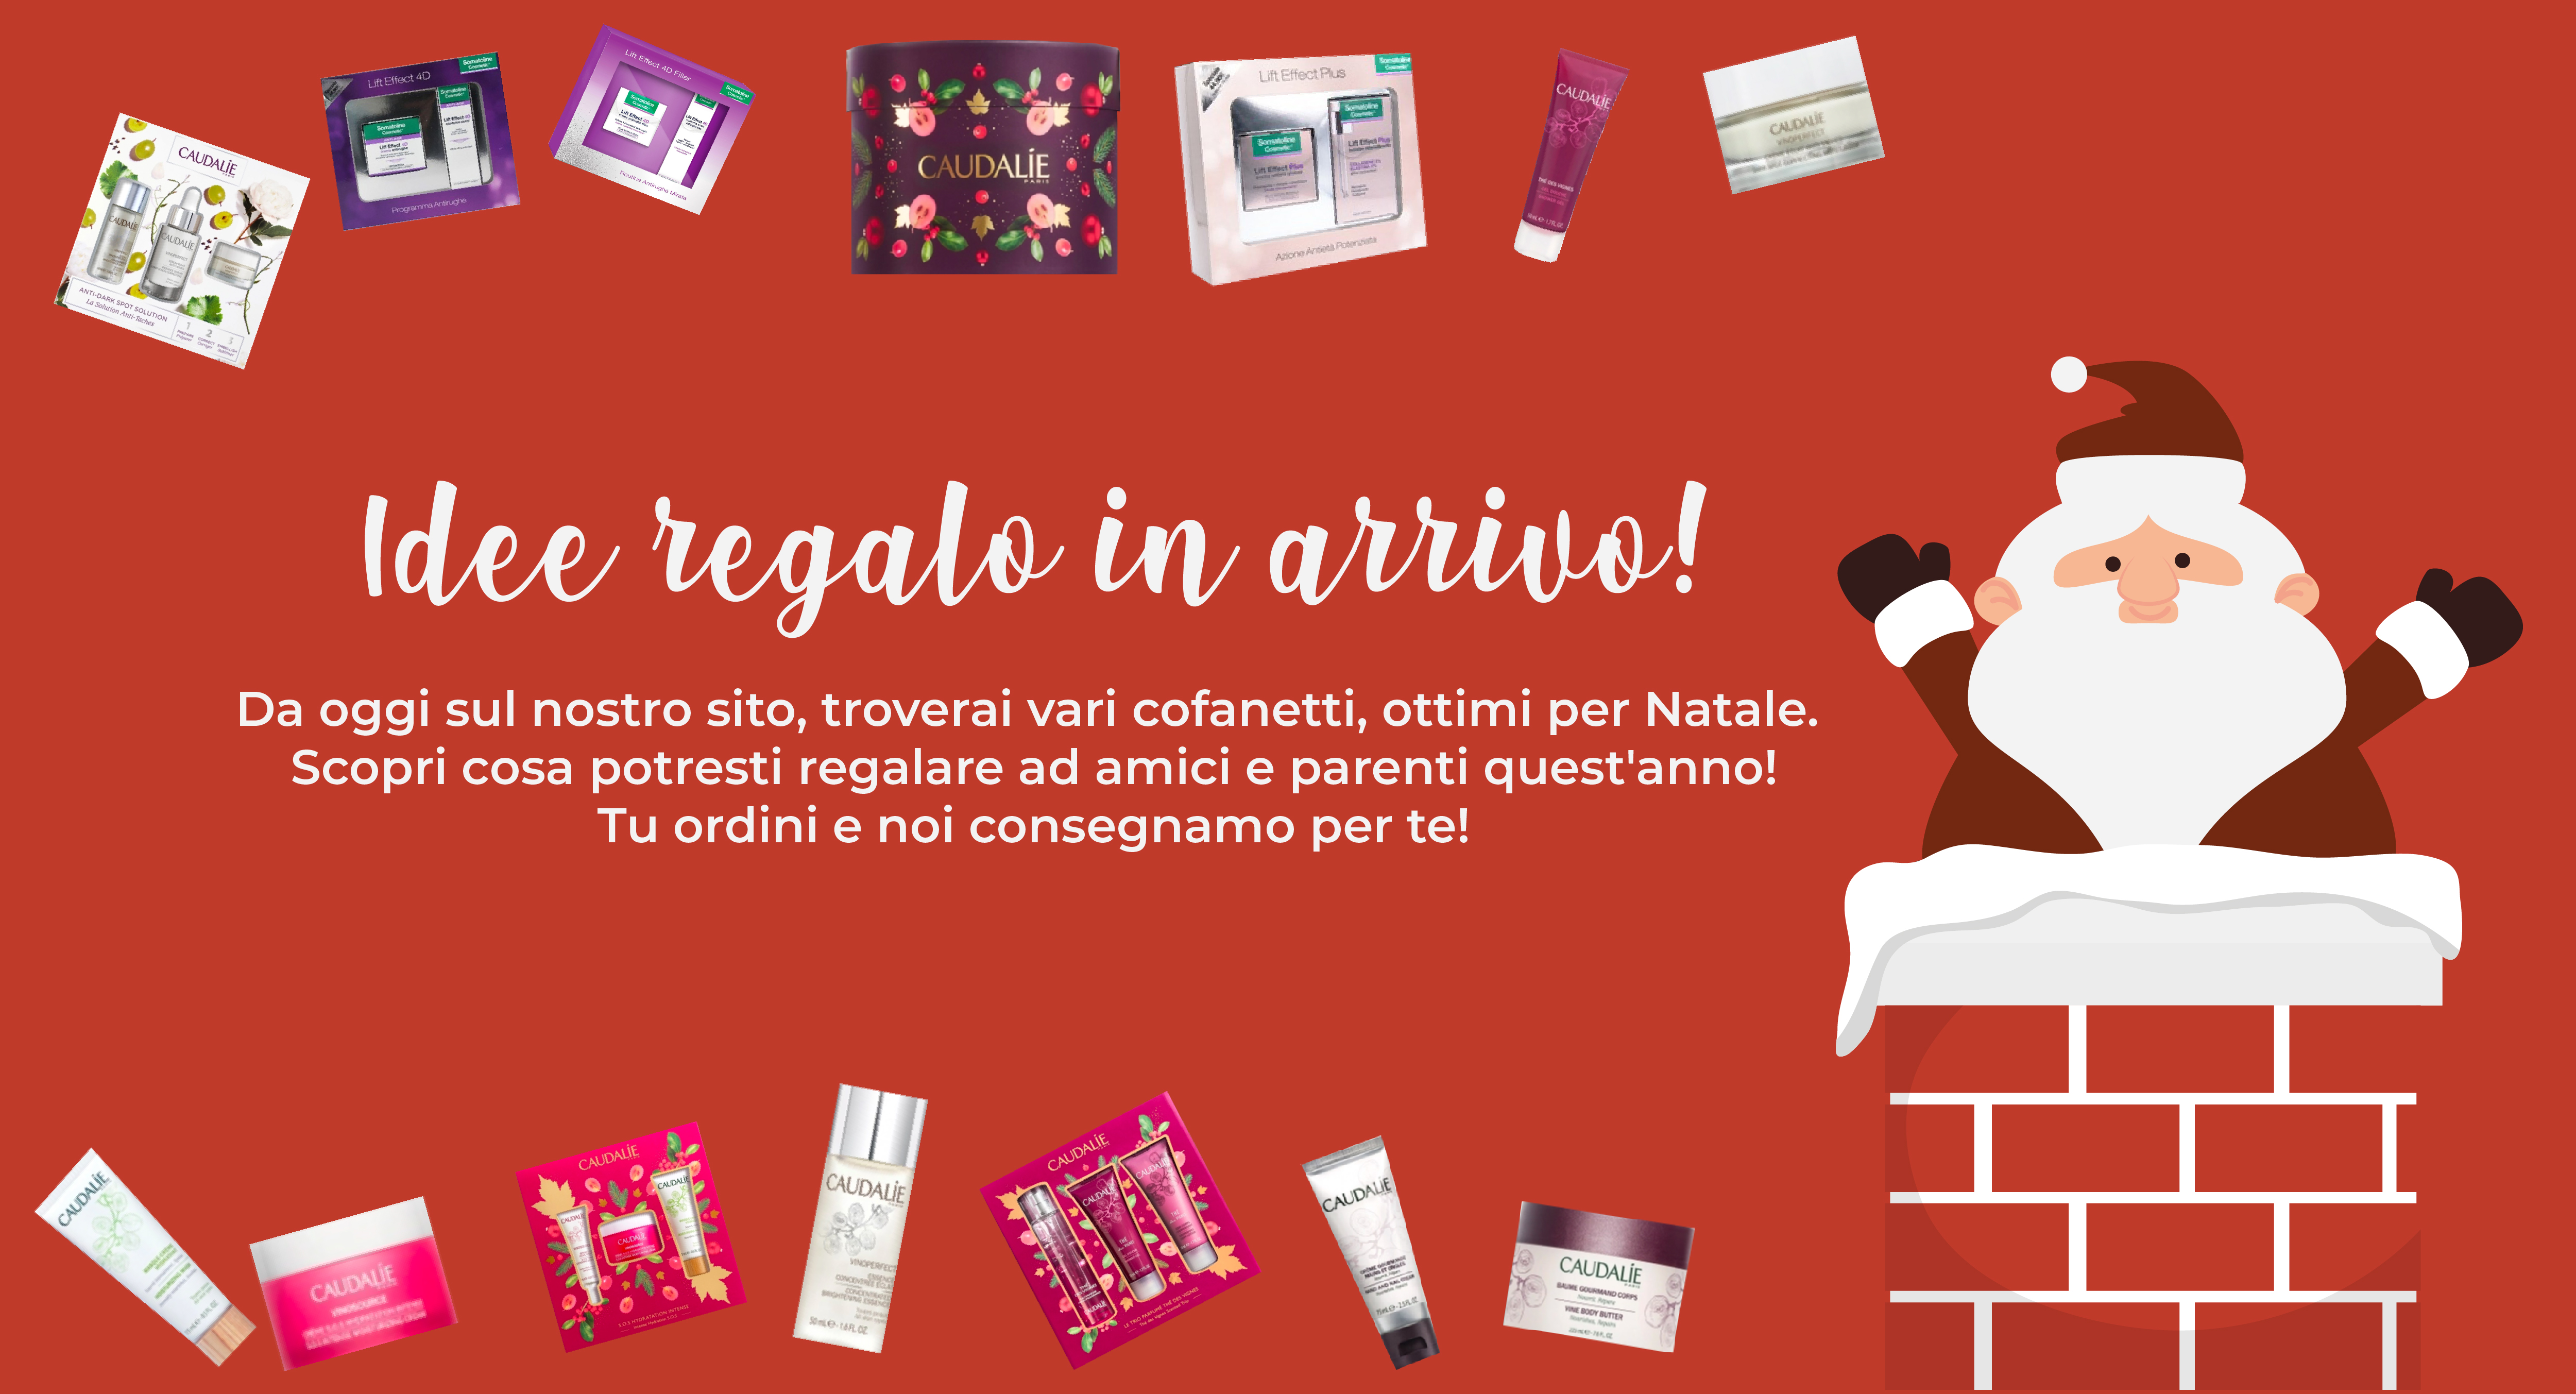 https://www.bravafarmacia.it/173-idee-regalo